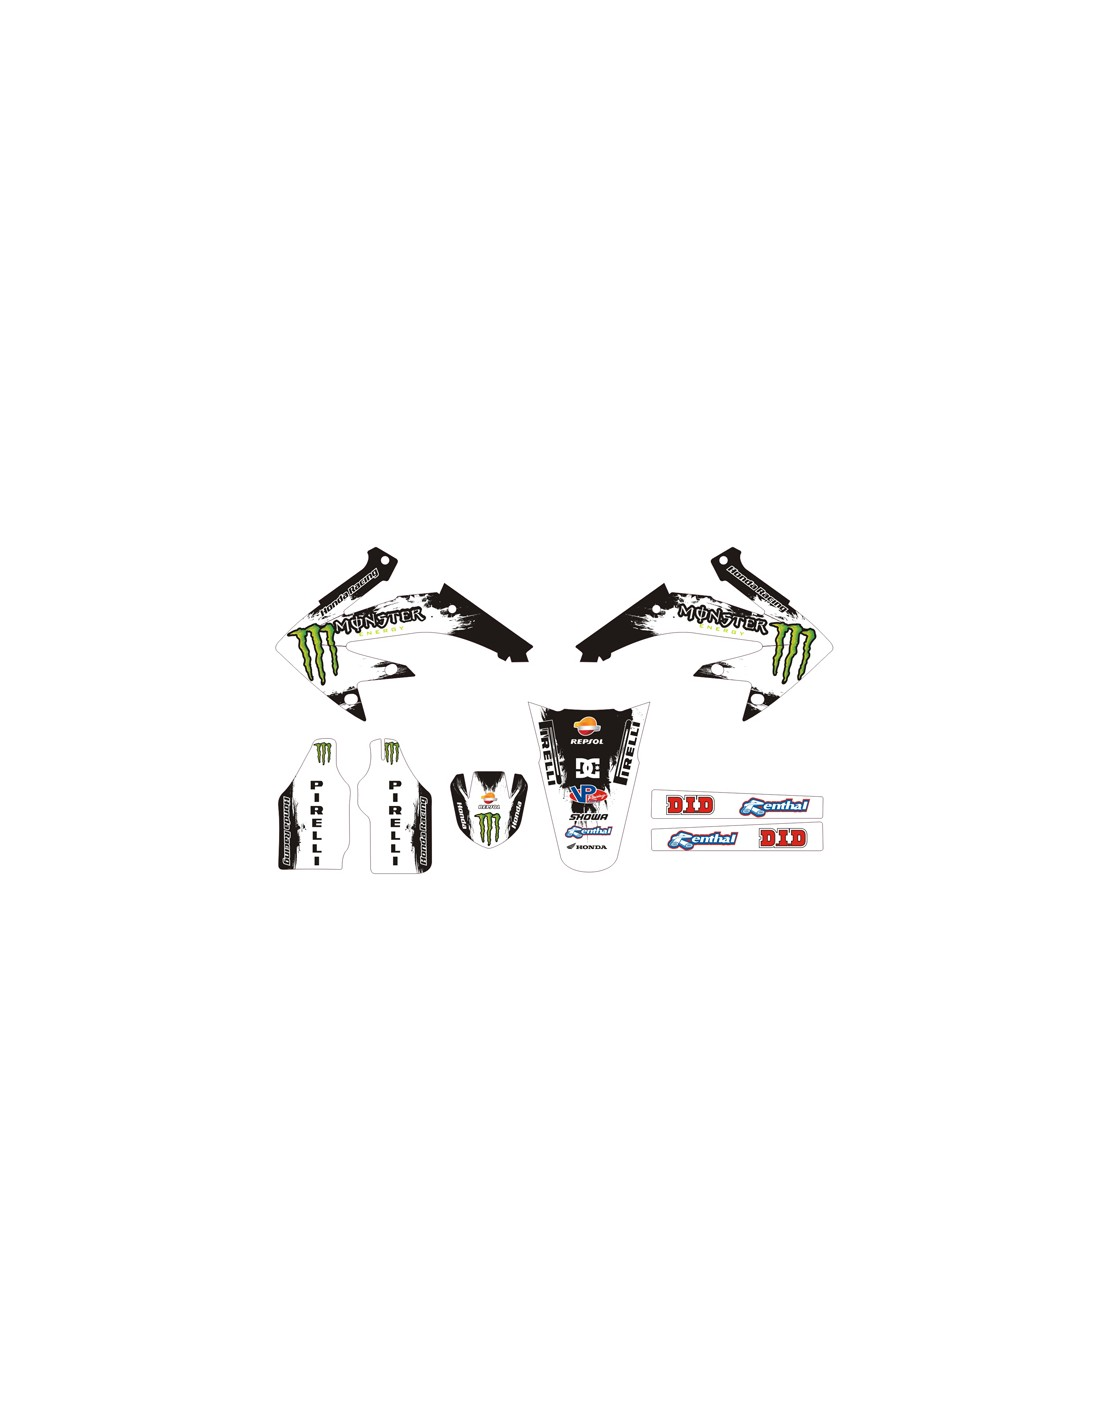 Kit Adesivi Grafiche Monster Dc White Hm 50 2006 2018